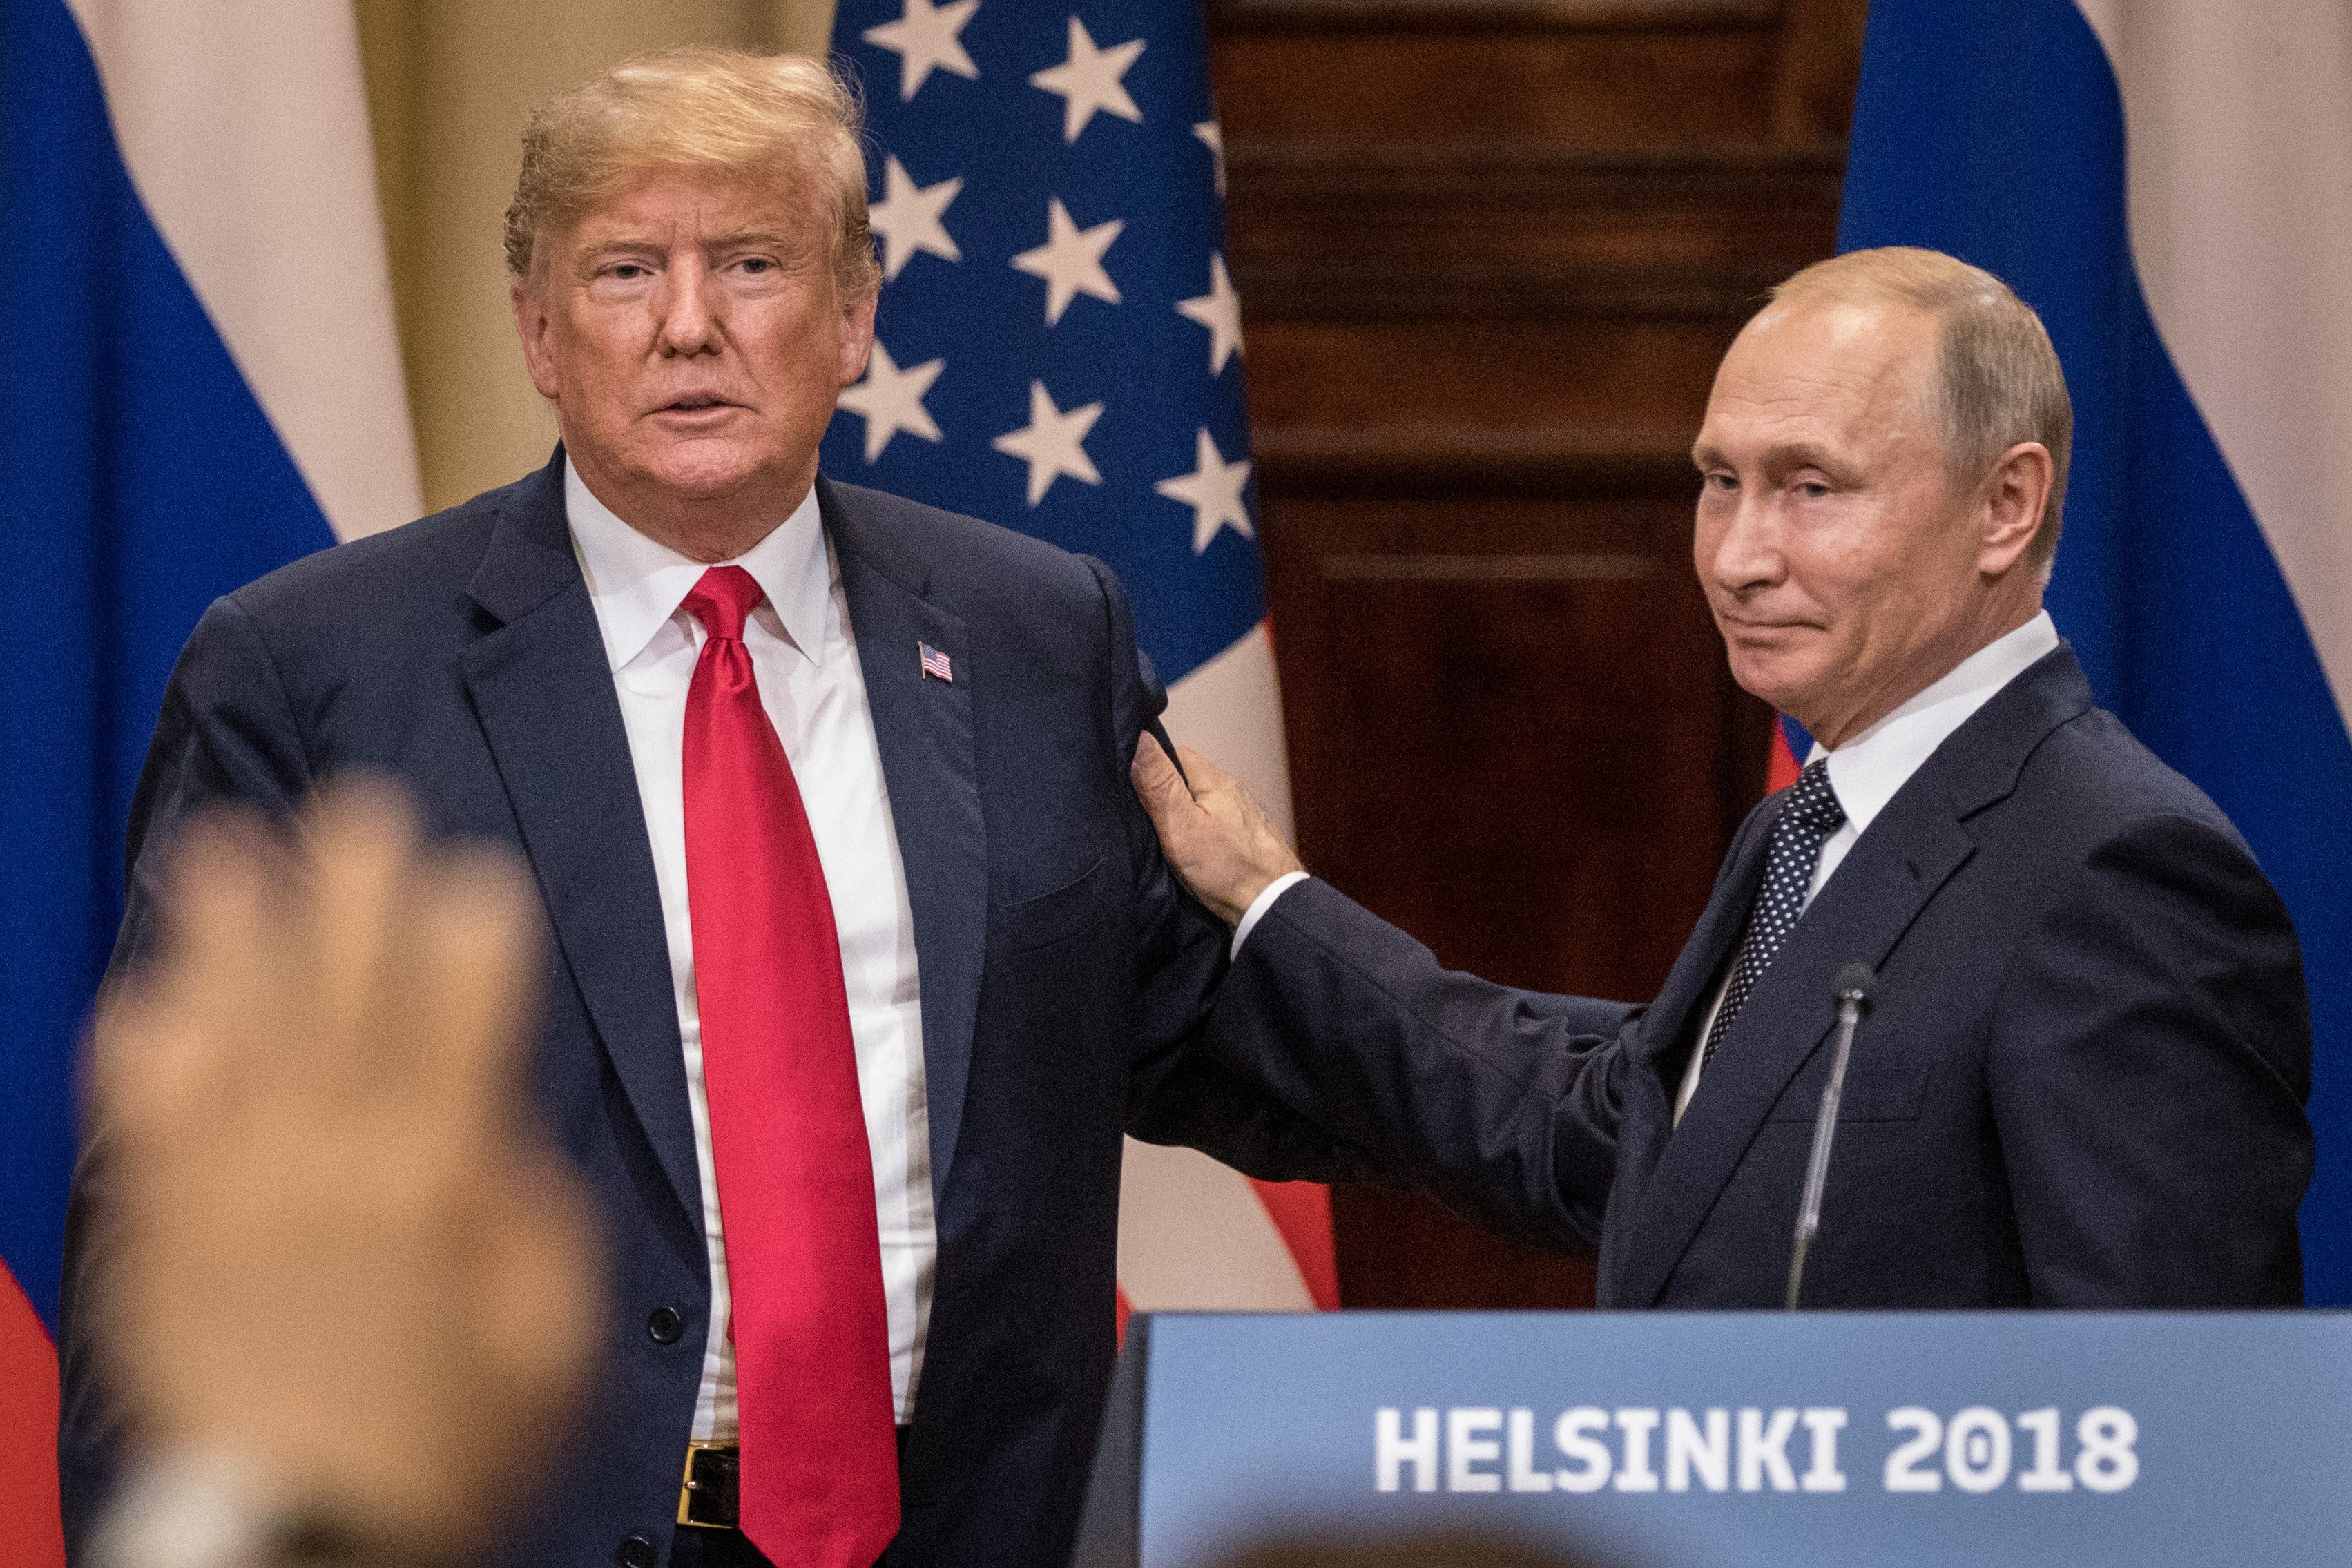 U.S. President Donald Trump (L) and Russian President Vladimir Putin shake hands during a joint press conference after their summit on July 16, 2018 in Helsinki, Finland. Chris McGrath/Getty Images